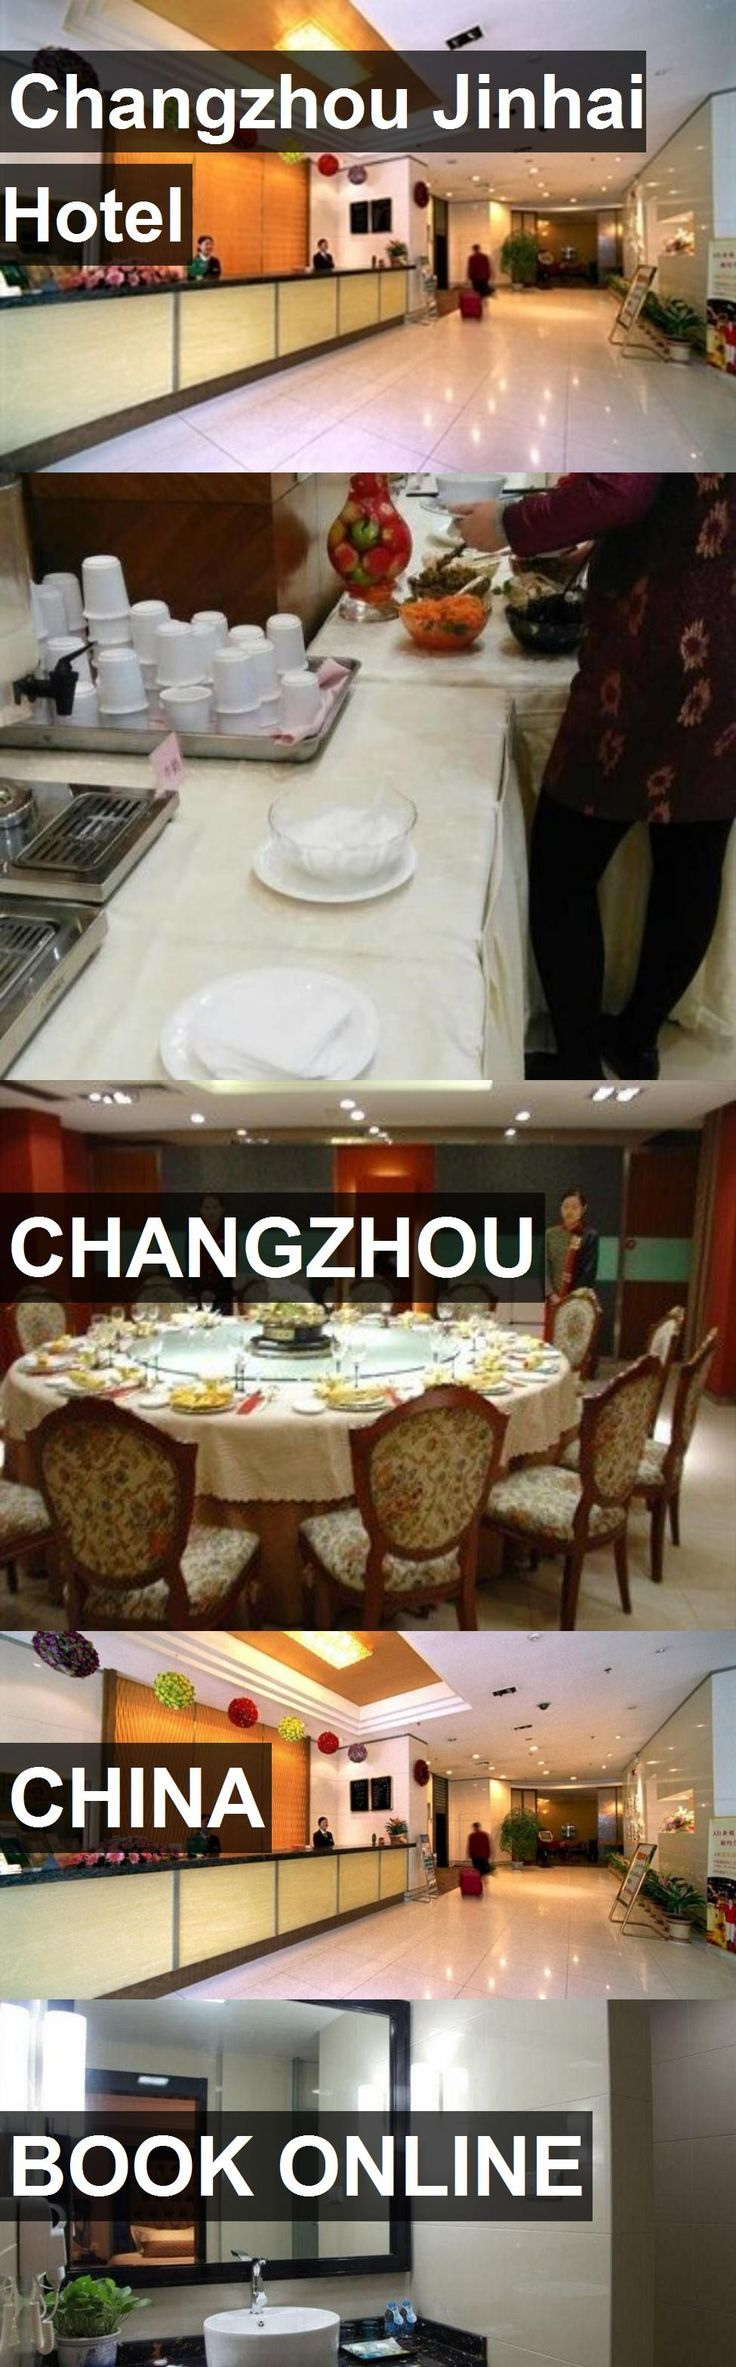 Hotel Changzhou Jinhai Hotel in Changzhou, China. For more information, photos, reviews and best prices please follow the link. #China #Changzhou #ChangzhouJinhaiHotel #hotel #travel #vacation